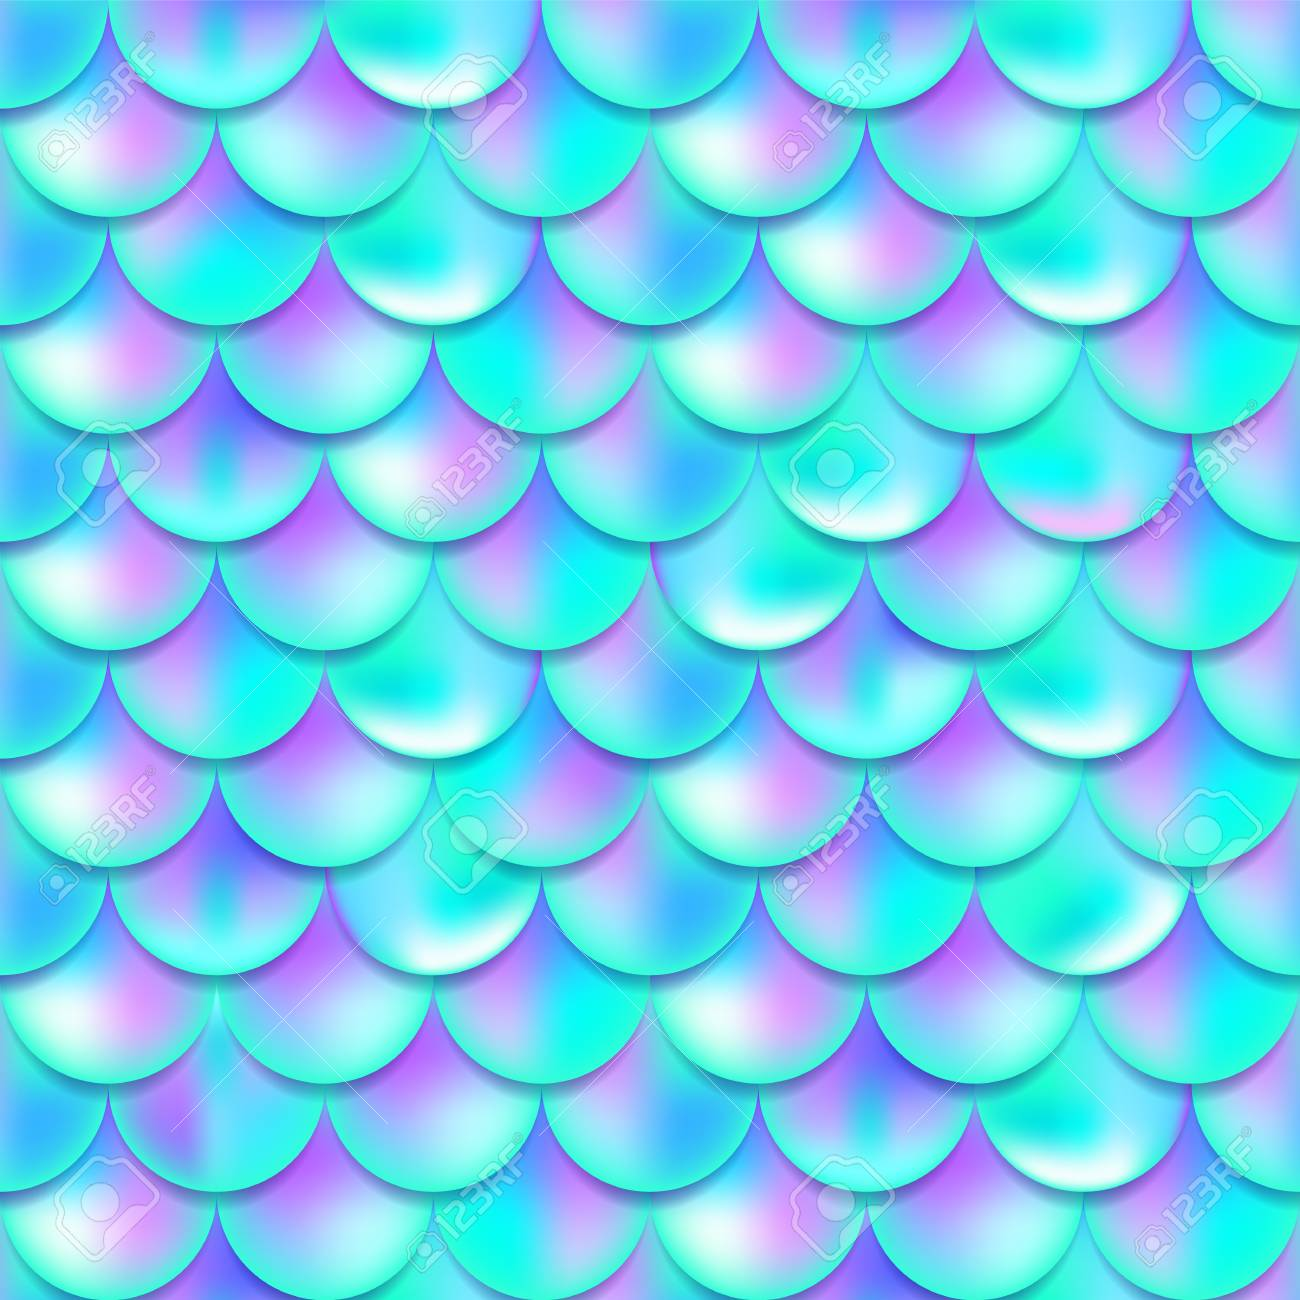 Pearl purple and blue mermaid scales seamless pattern, print, texture, beautiful background with gradient, magic creature, fish skin, vector illustration - 125229838